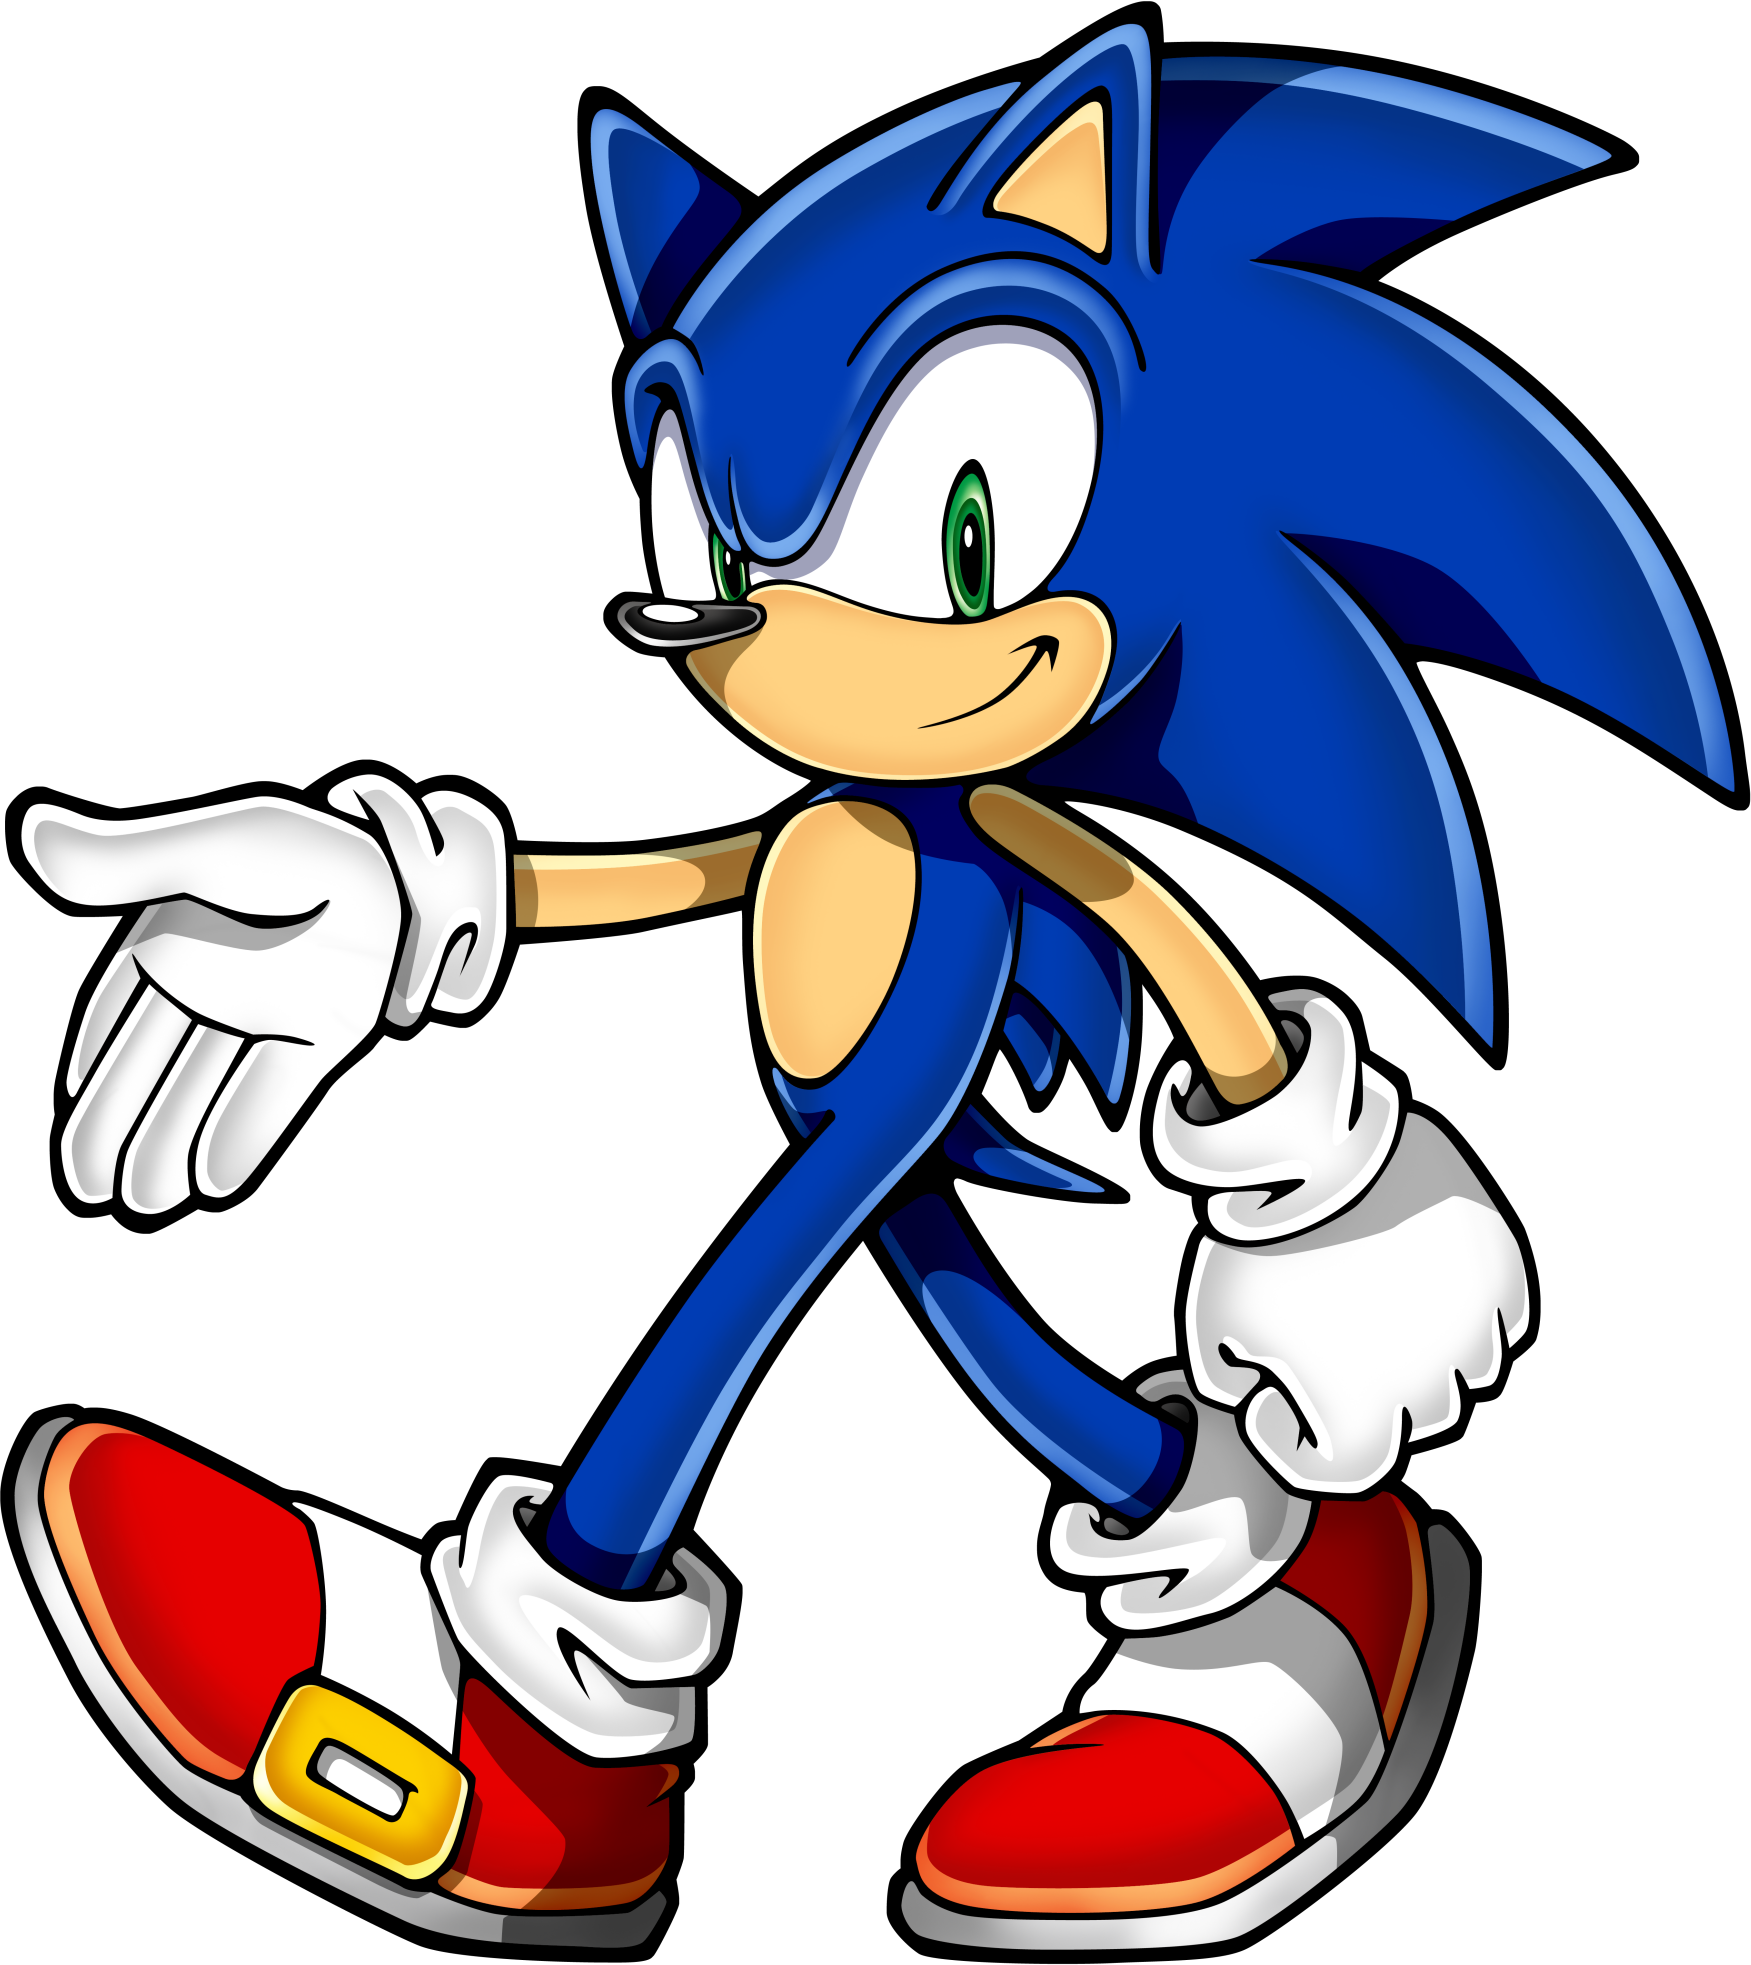 Sonic Art Assets DVD - Sonic The Hedgehog - 2.png